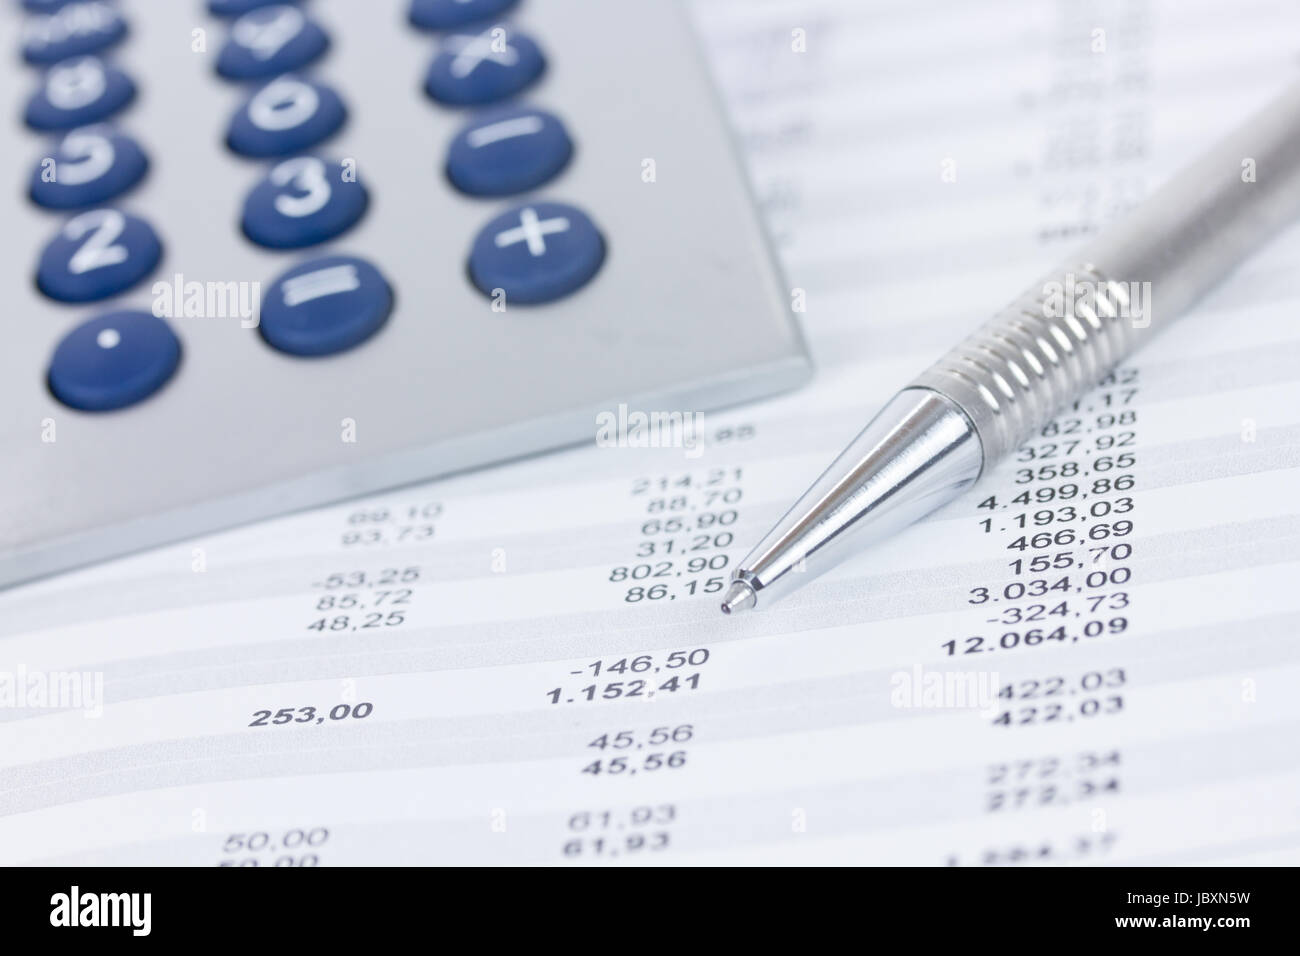 calculator and columns of figures Stock Photo